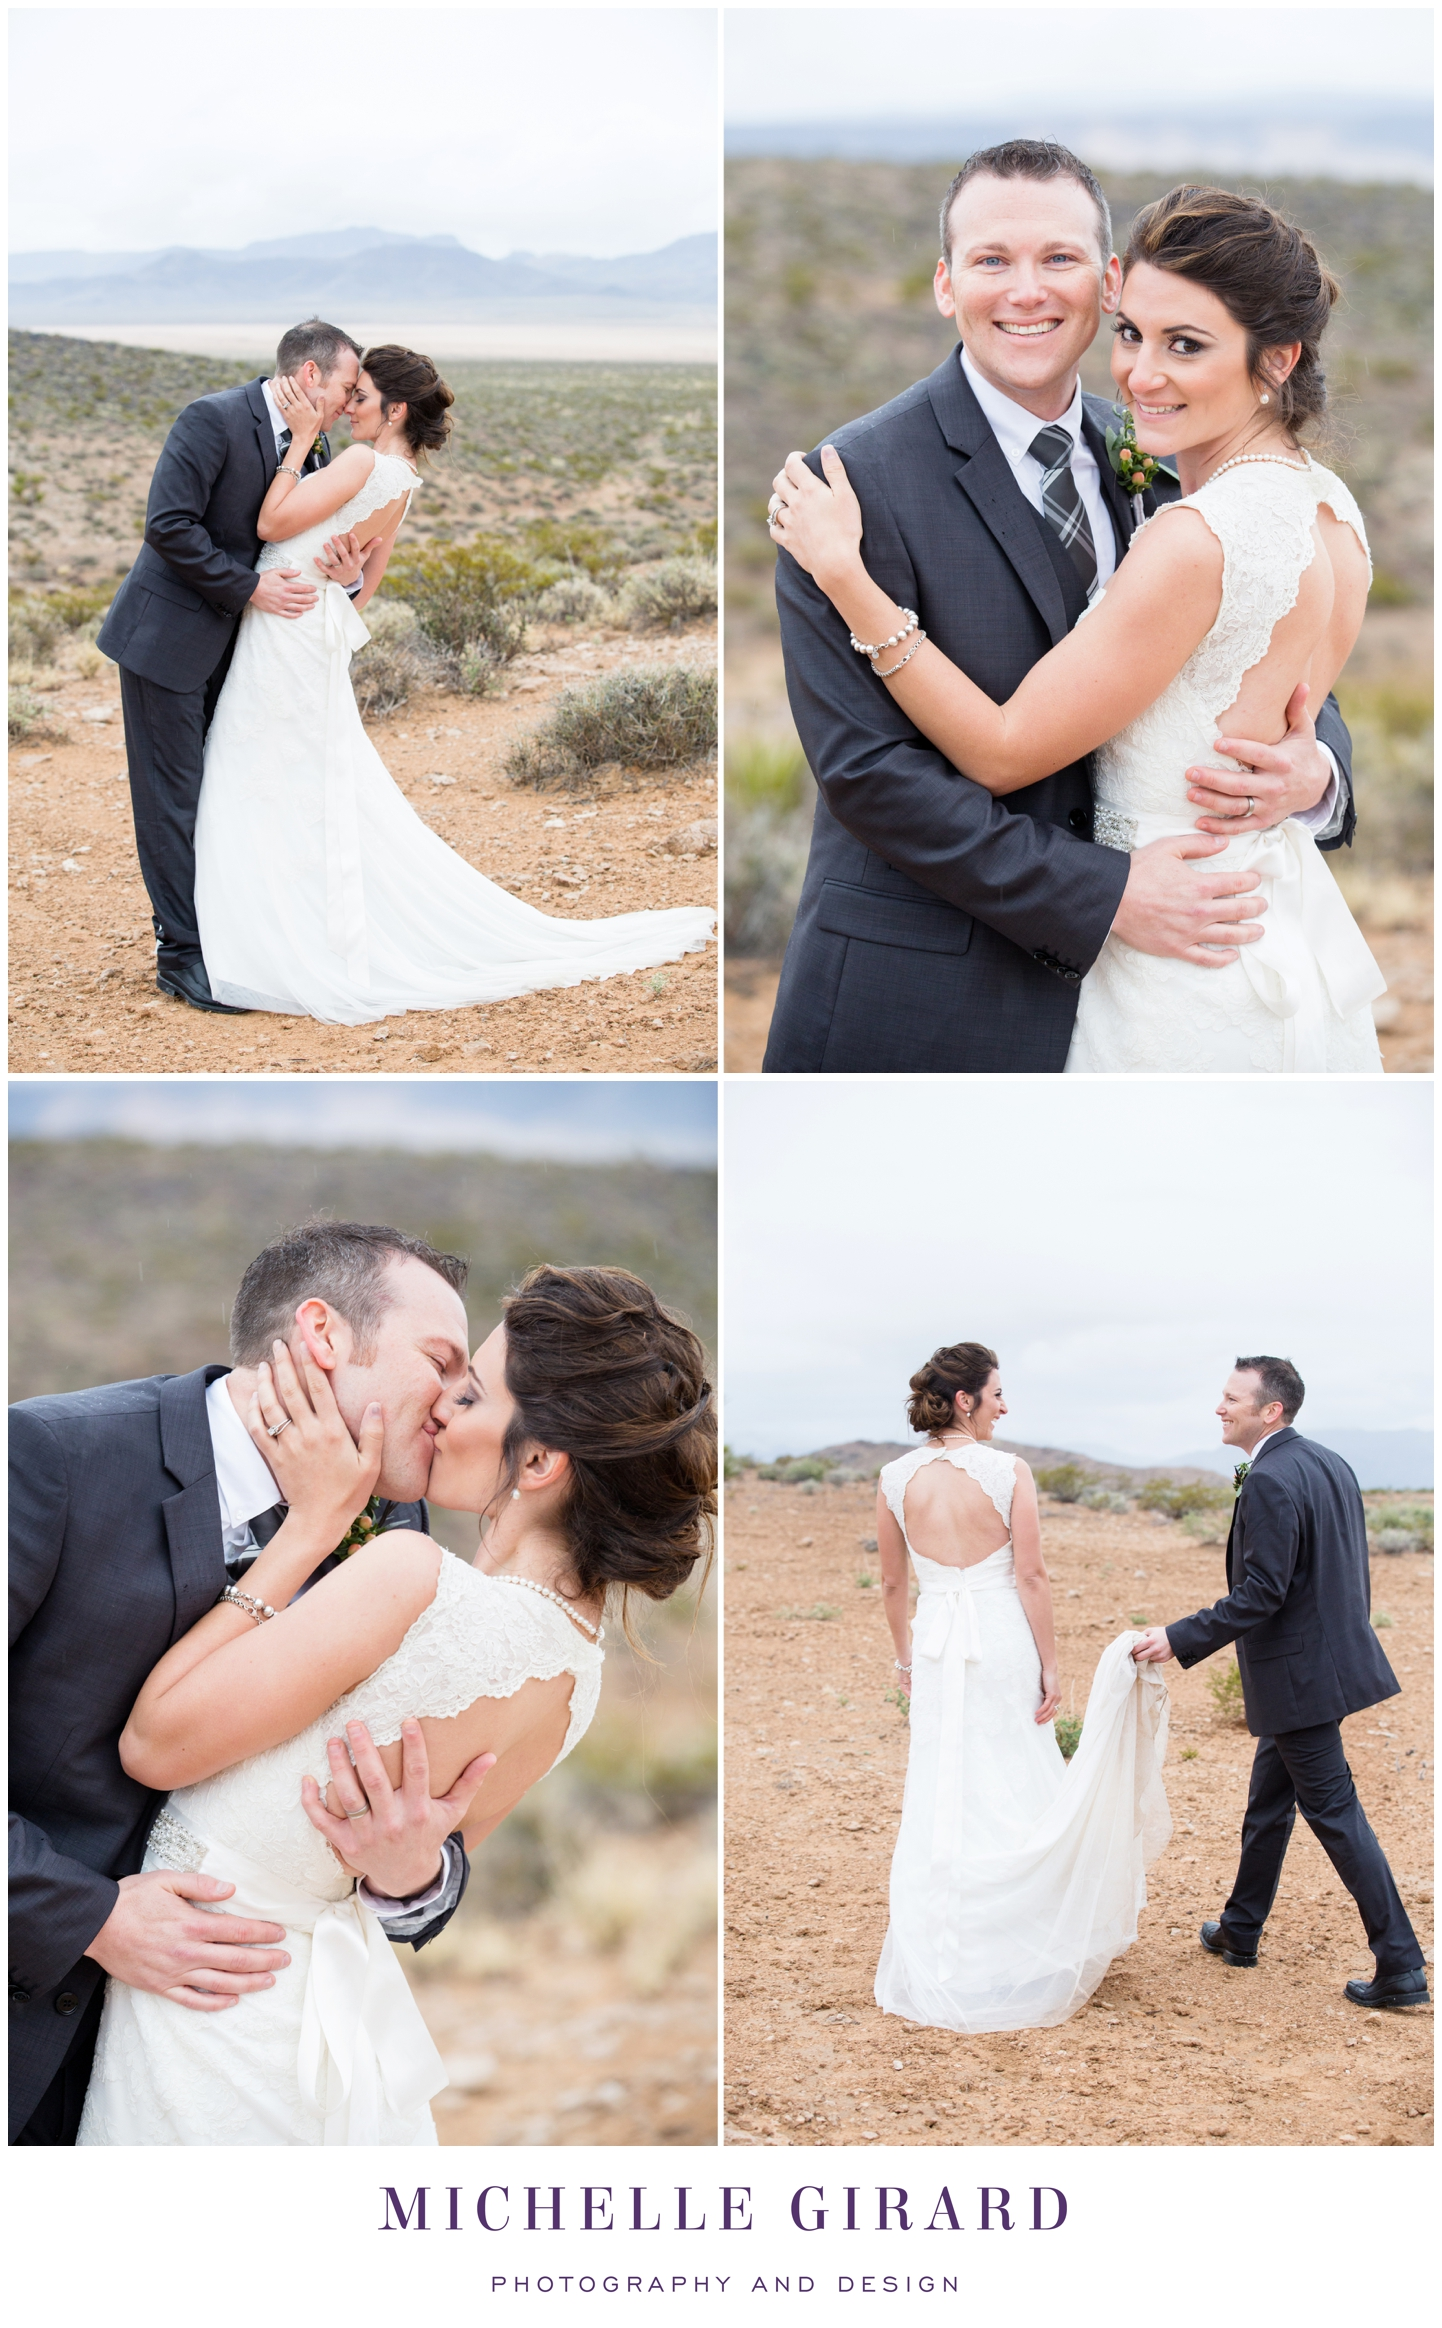 las-vegas-desert-wedding-bride-groom-photography-nevada-michelle-girard-15.jpg